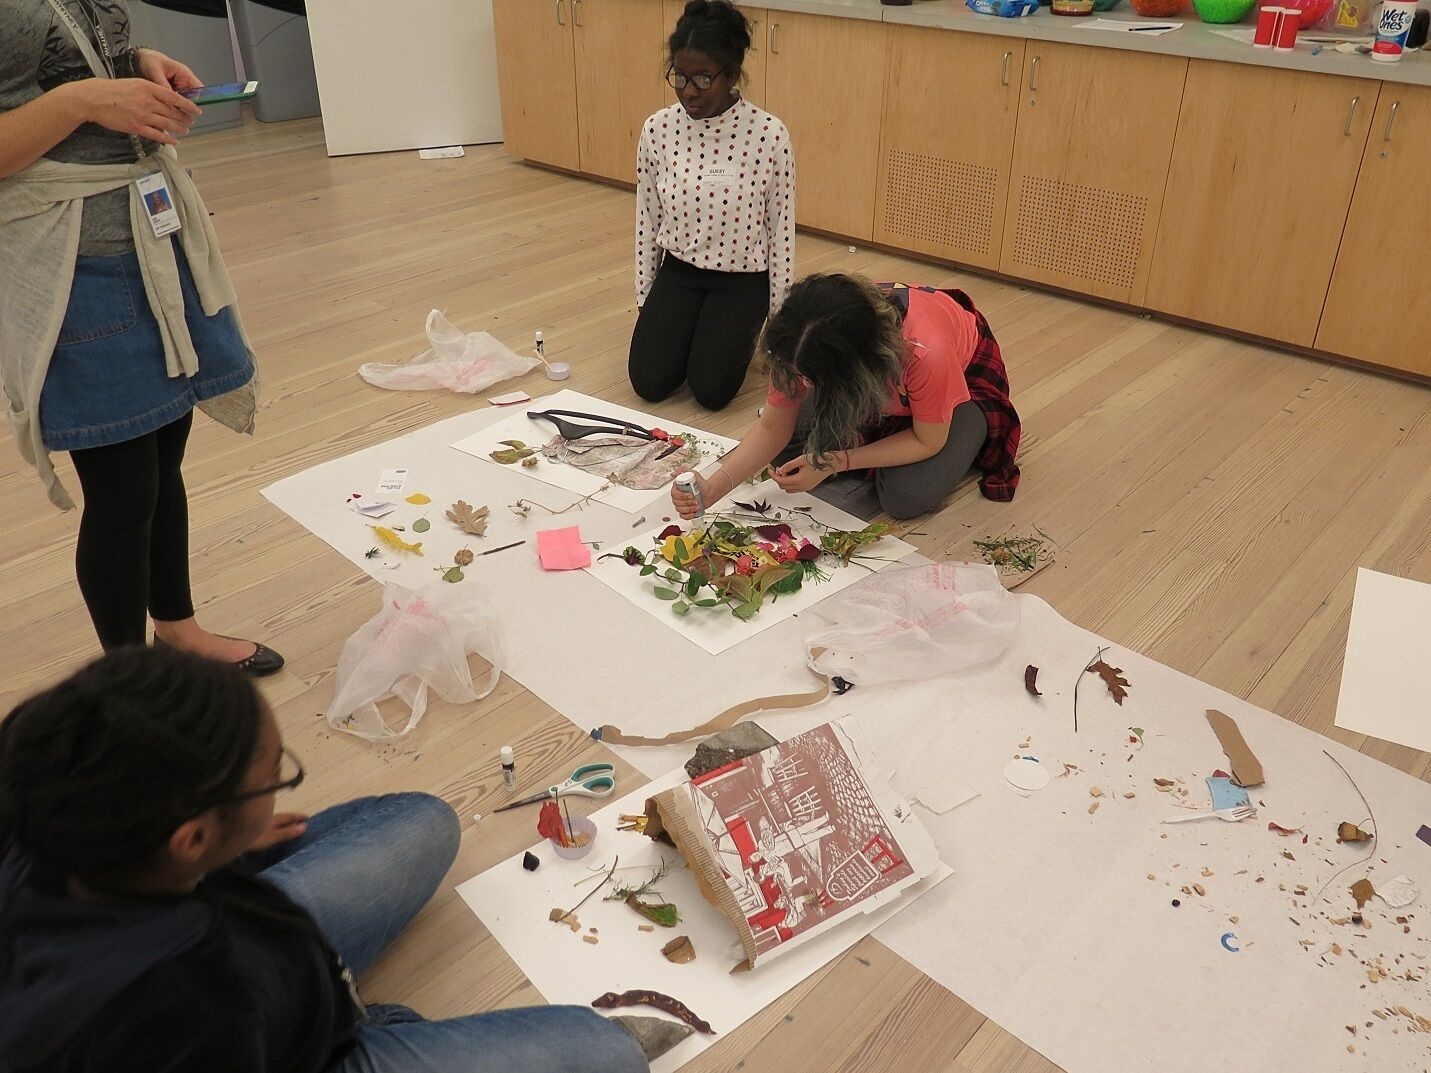 Students making an art project with flower